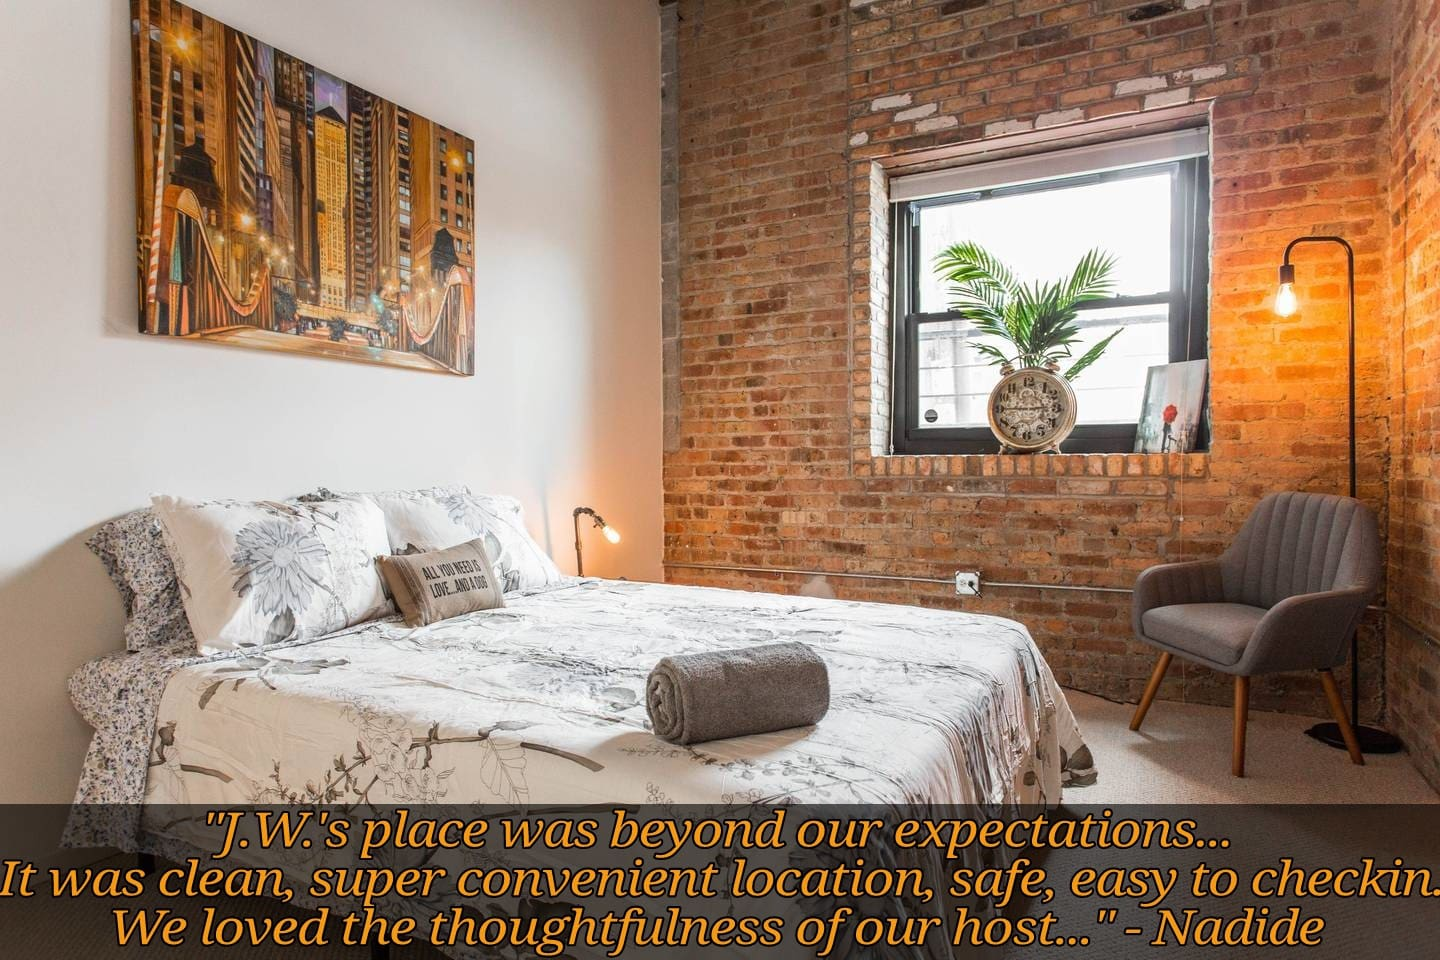 Welcome to our spacious 2bd/1ba loft (with a 1bd Den) only steps to McCormick, the best museums, and Lake Michigan!  Shown is a big comfy queen bed